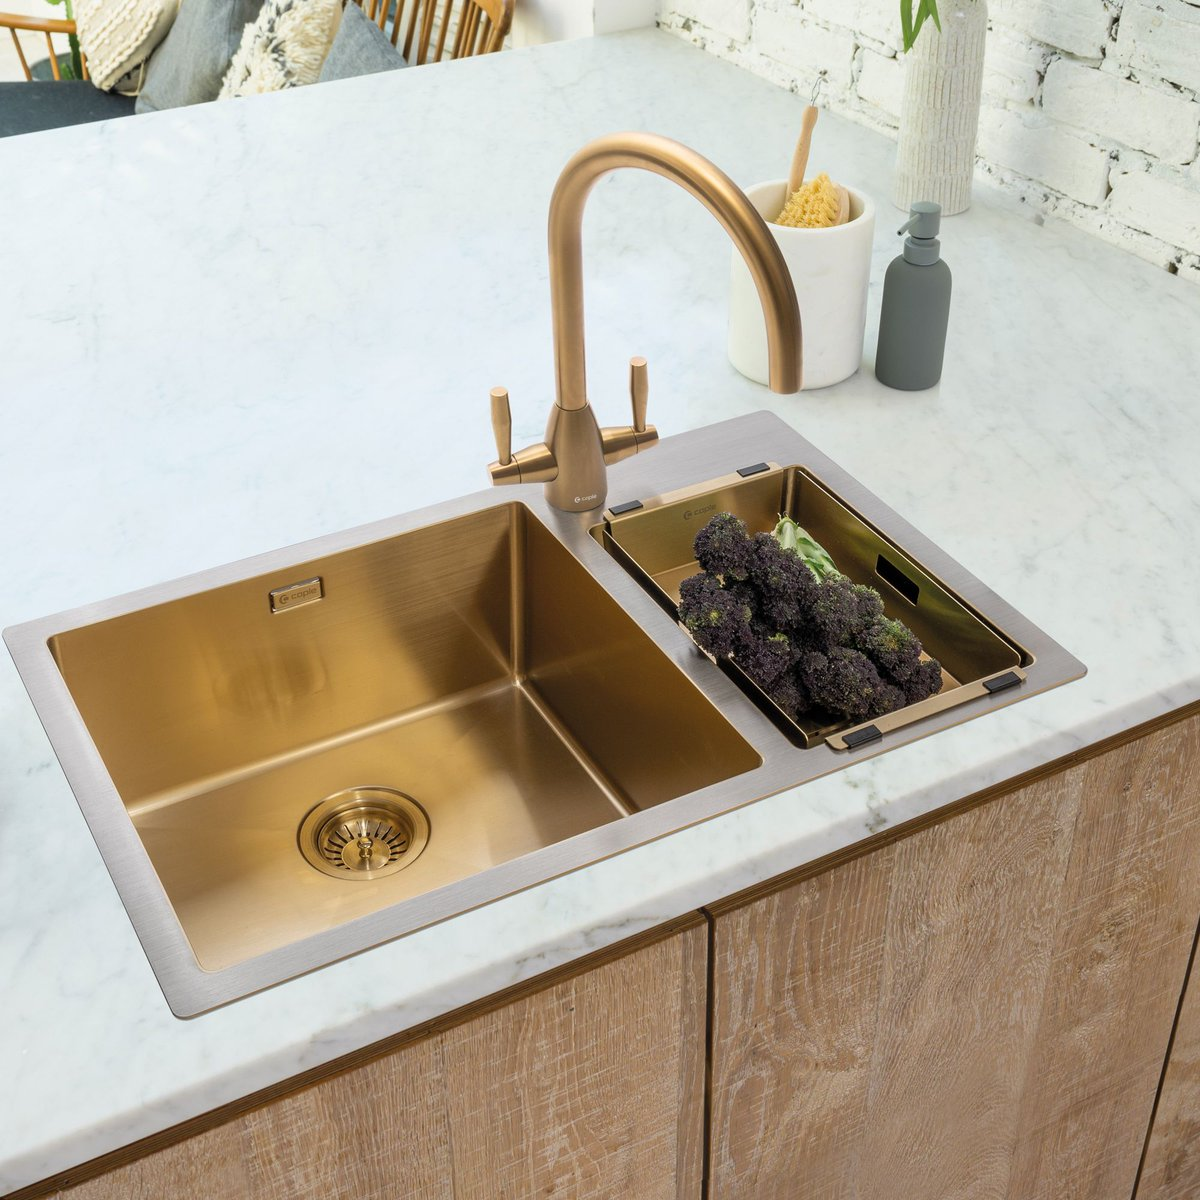 Now available in gold😍 Our dual control Avel tap is one of our most popular models. Currently available in 8 different finishes, we are excited to announce that we are adding this beautiful gold finish to the Avel collection: buff.ly/3ASx56O #CapleQuality #Gold